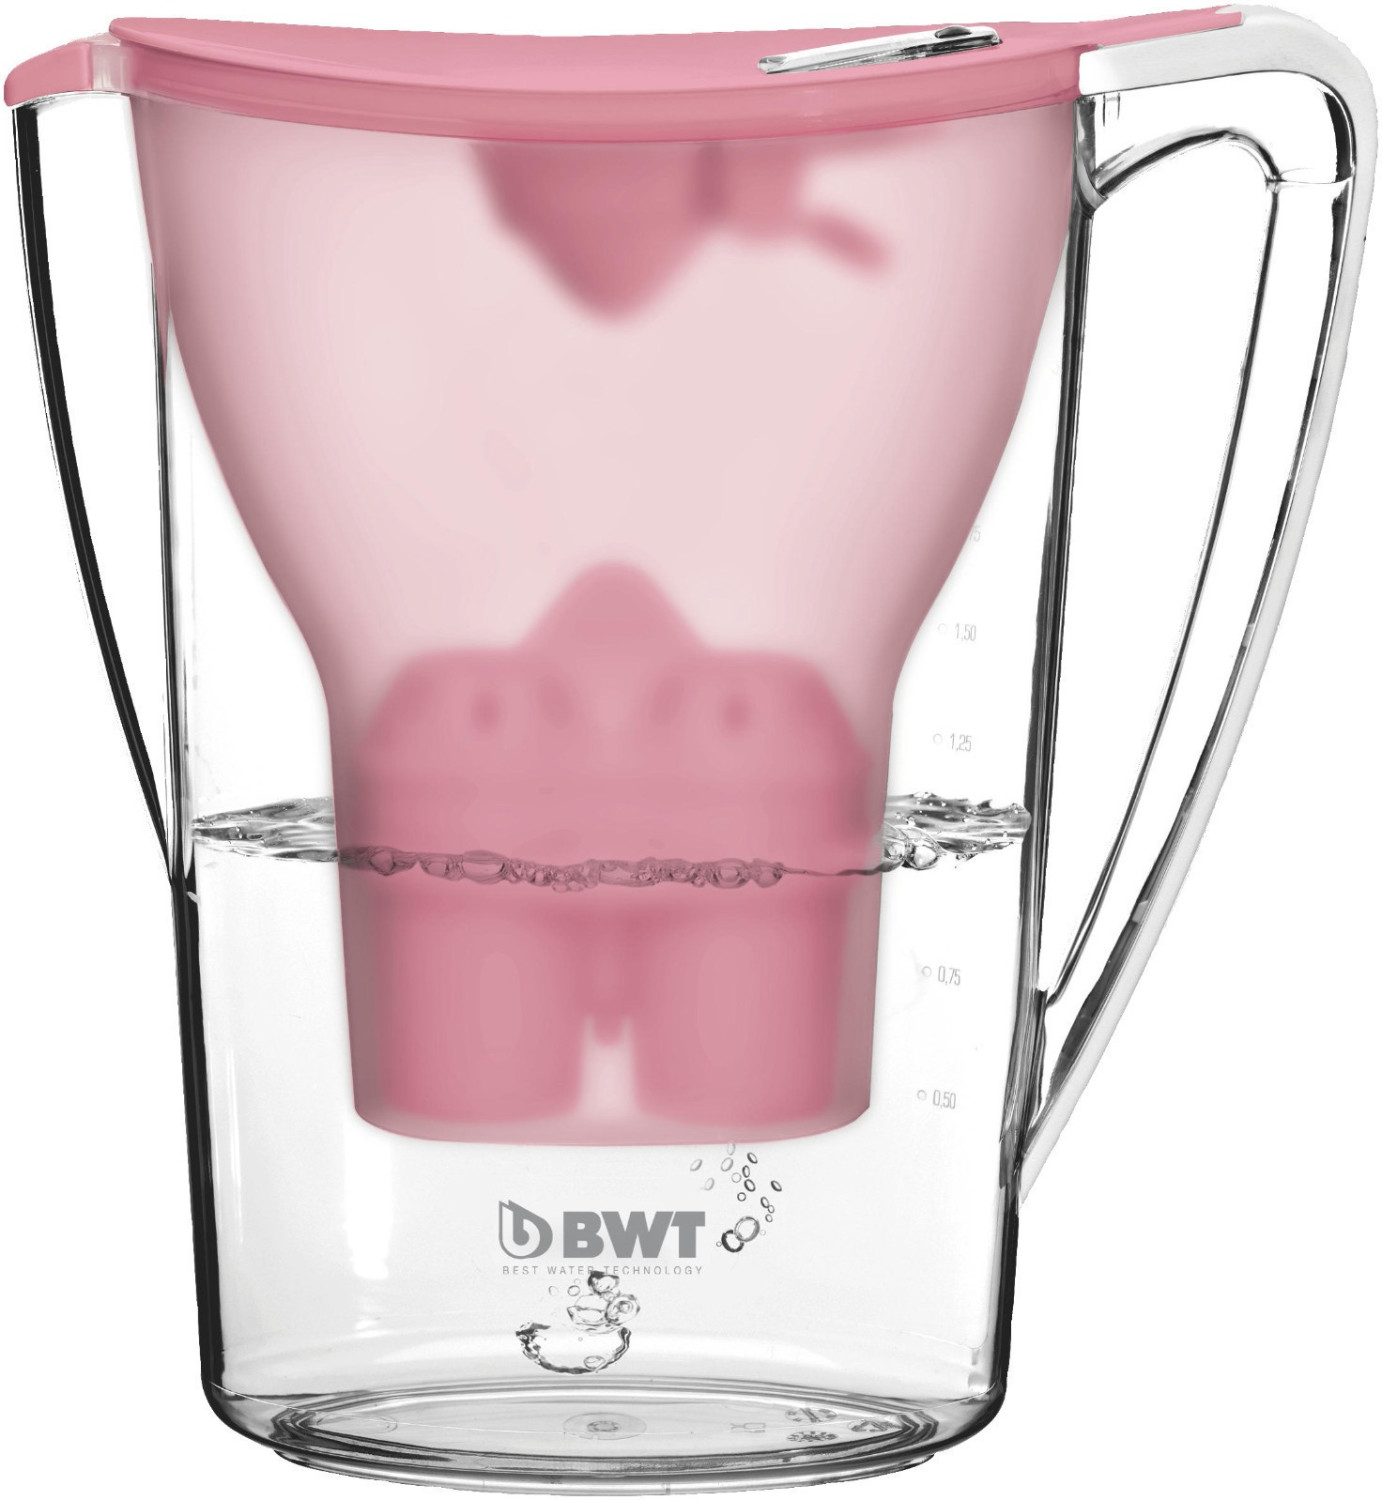 Image of BWT Penguin Gourmet Edition 2.7 L Pink